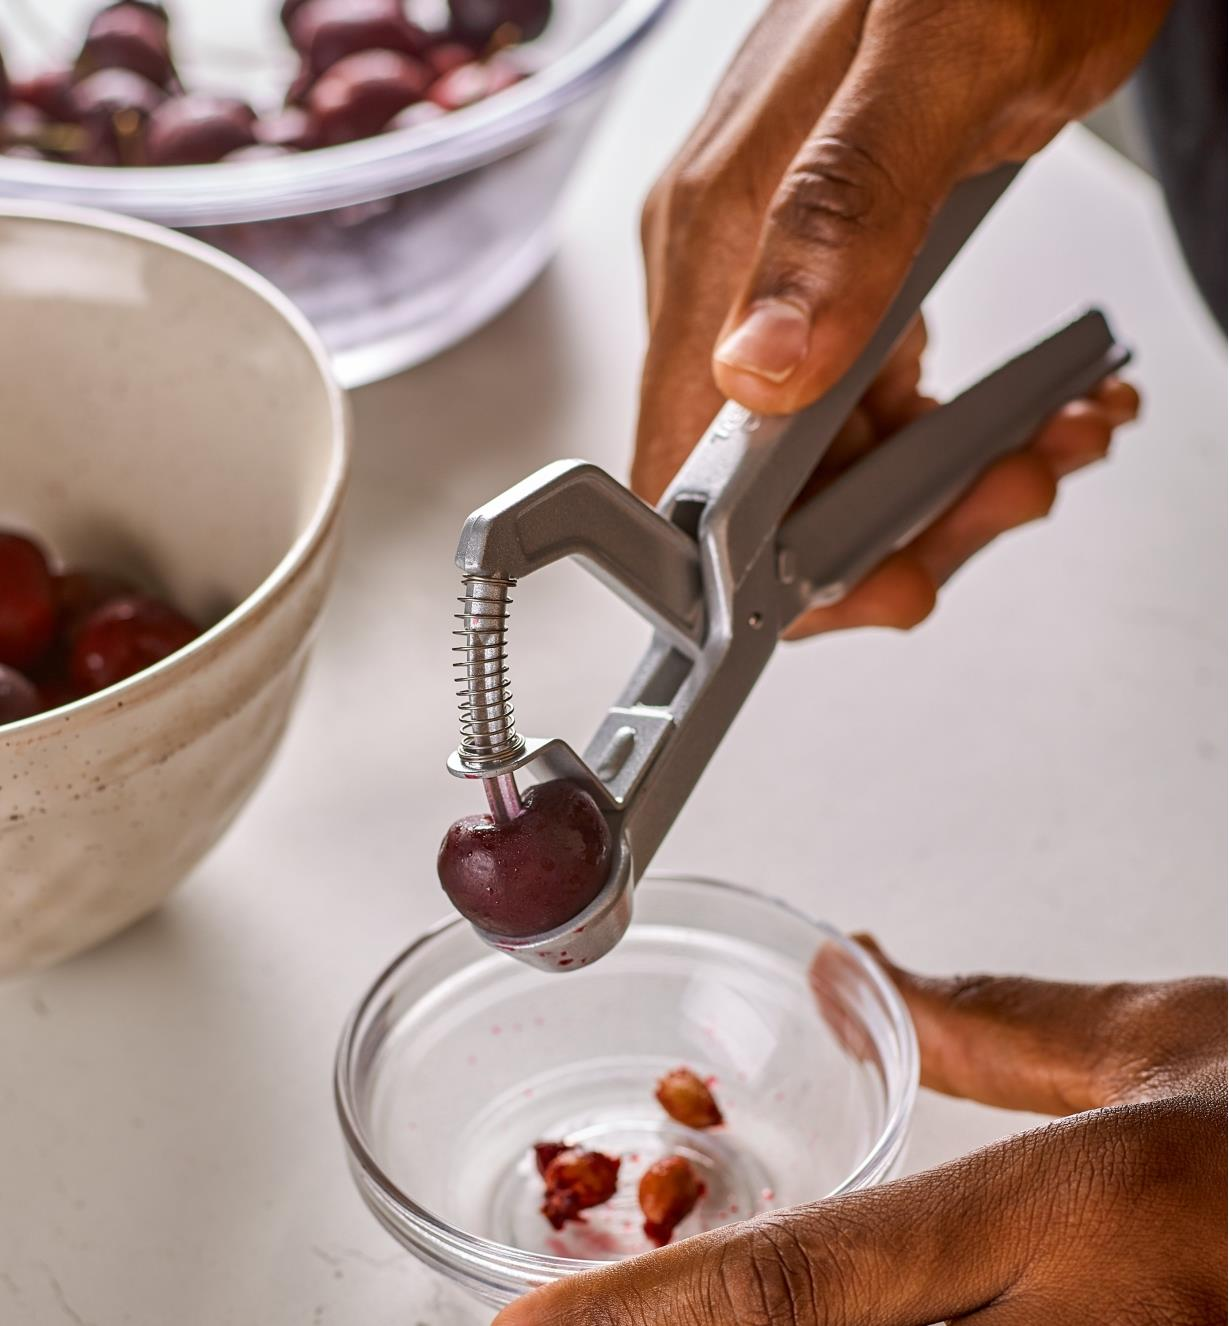 Squeezing the handles of the olive and cherry pitter